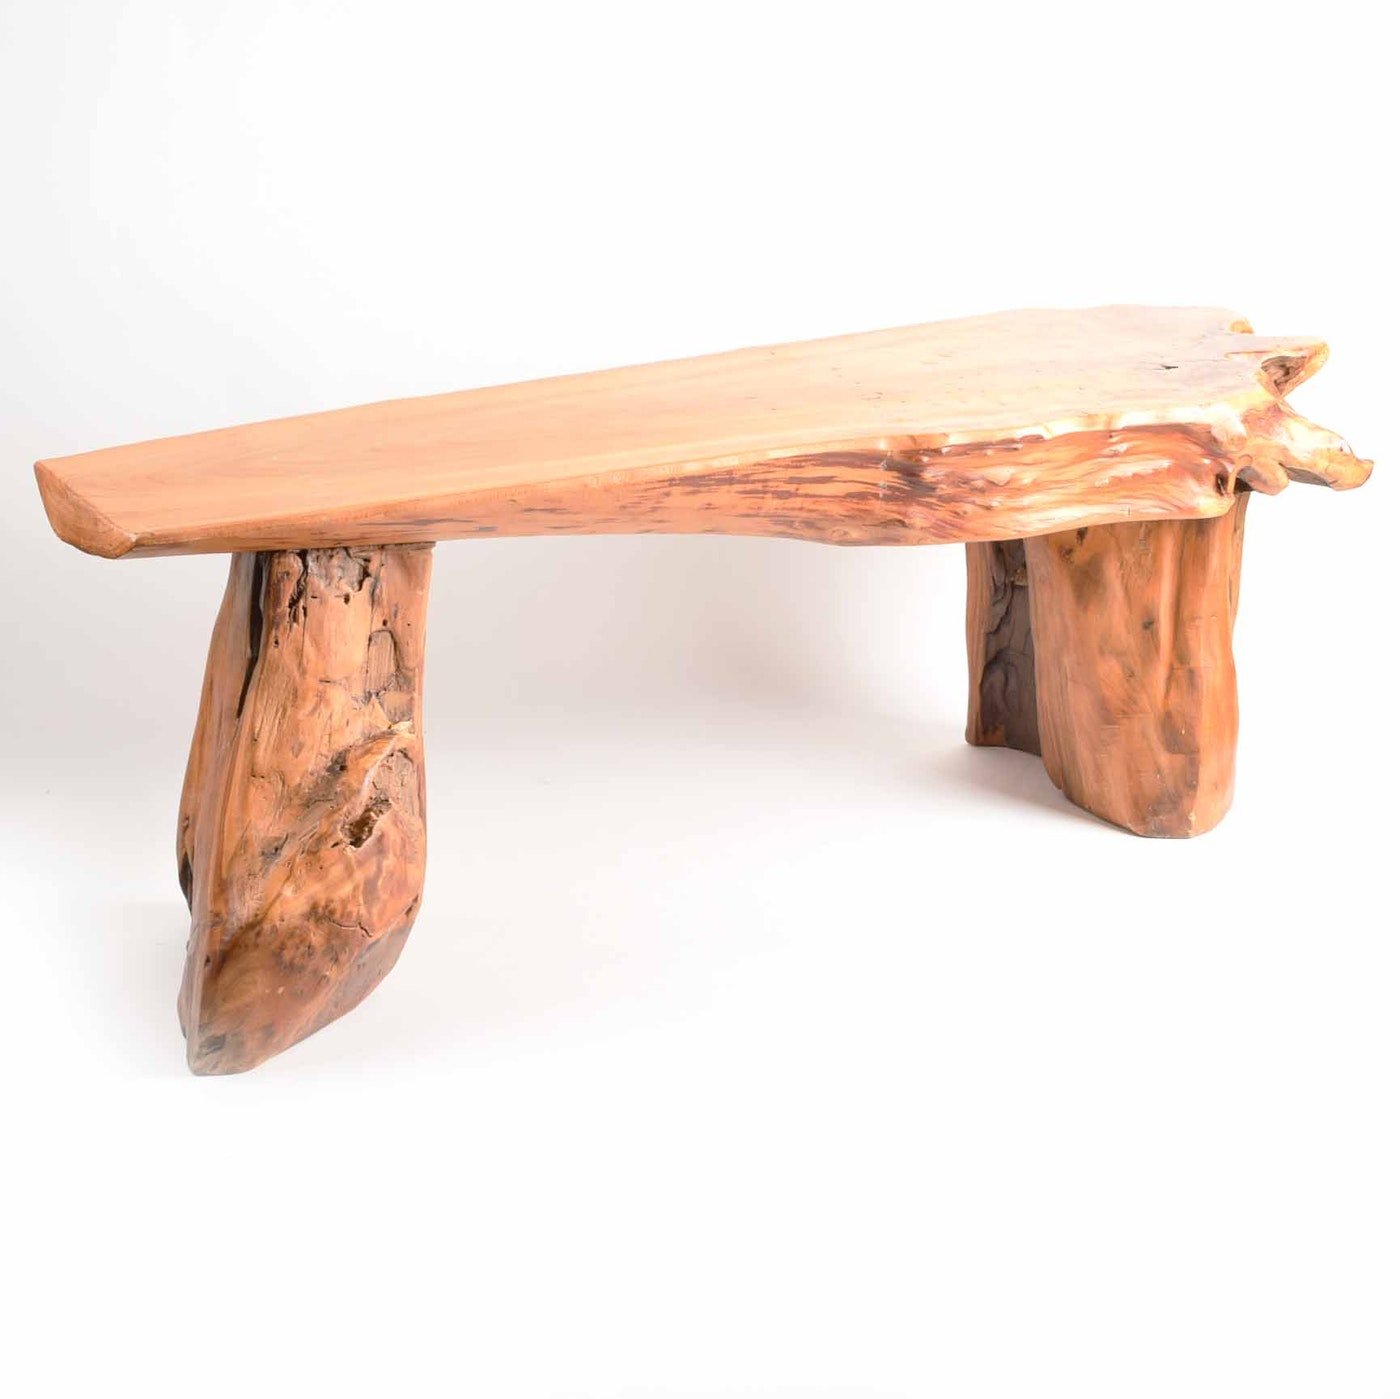 Rustic live edge wood coffee table or bench ebth Live wood coffee table